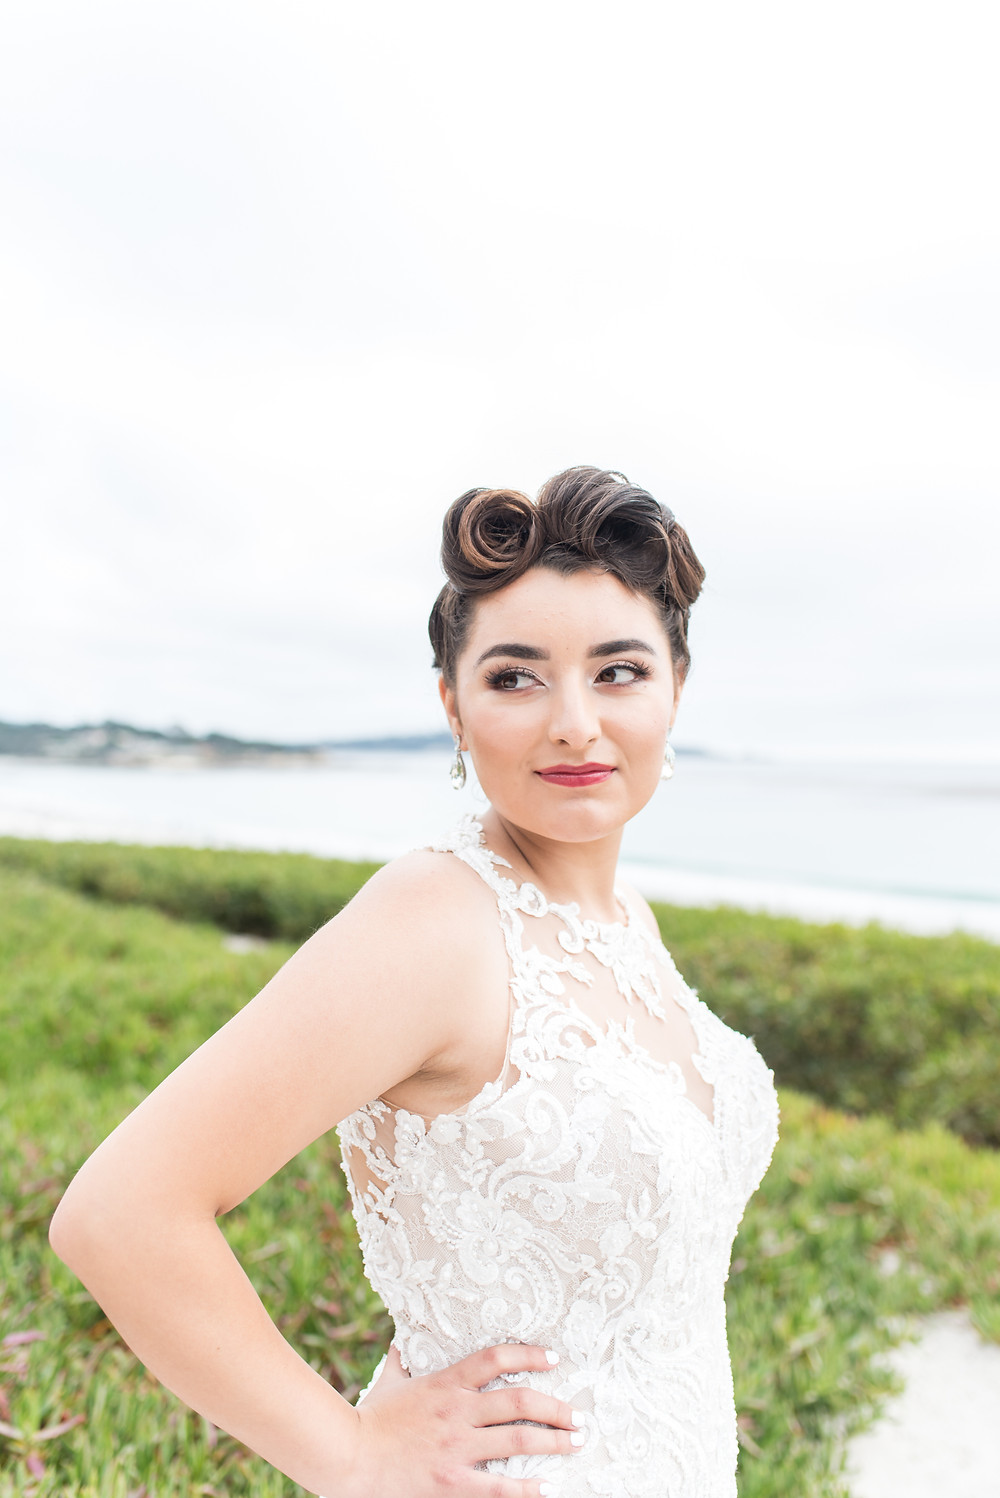 vintage bridal updo, victory rolls, pinup hair, monterey bridal portraits, monterey wedding photographer, las vegas wedding photographer, retro wedding, vintage wedding, retro, pin up, wedding photographer, beach wedding, carmel, carmel by the sea